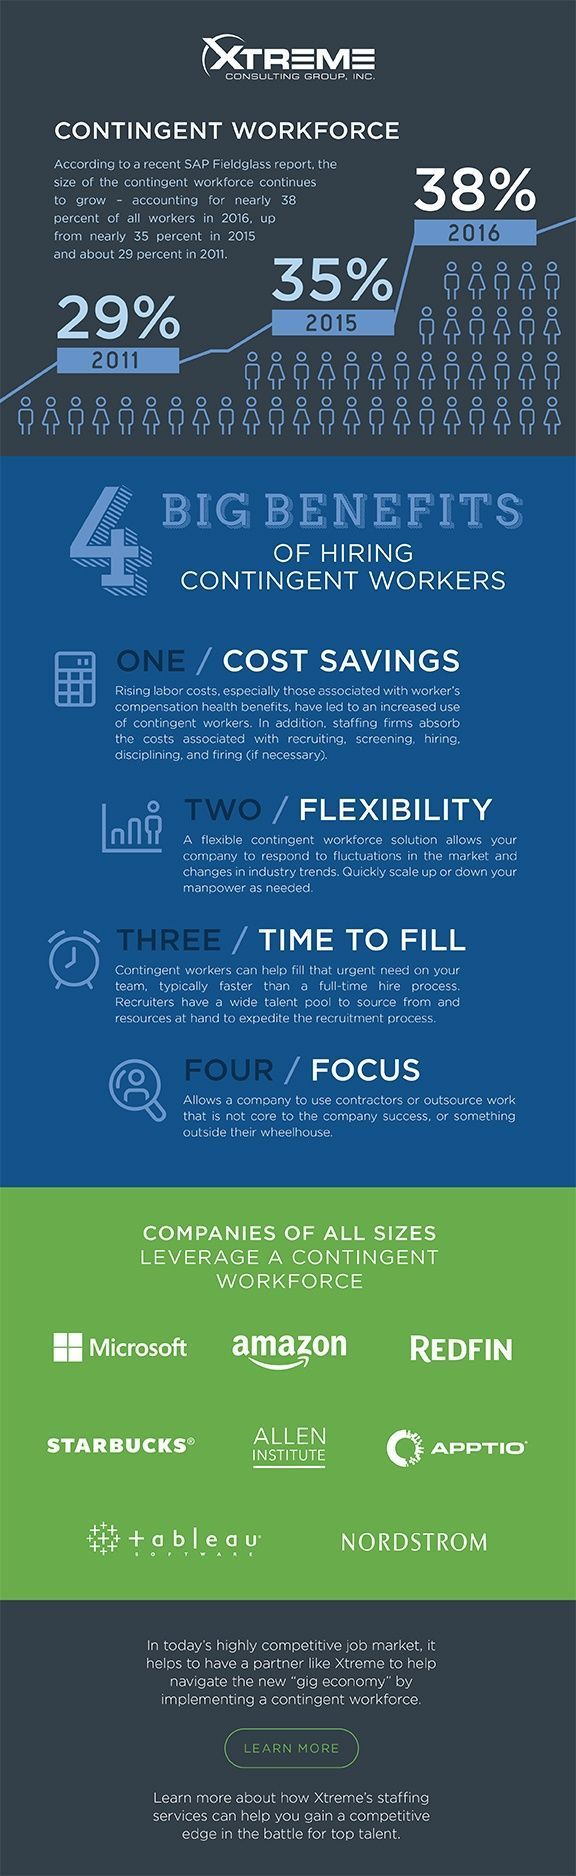 infographic infographic xtreme consulting hiring